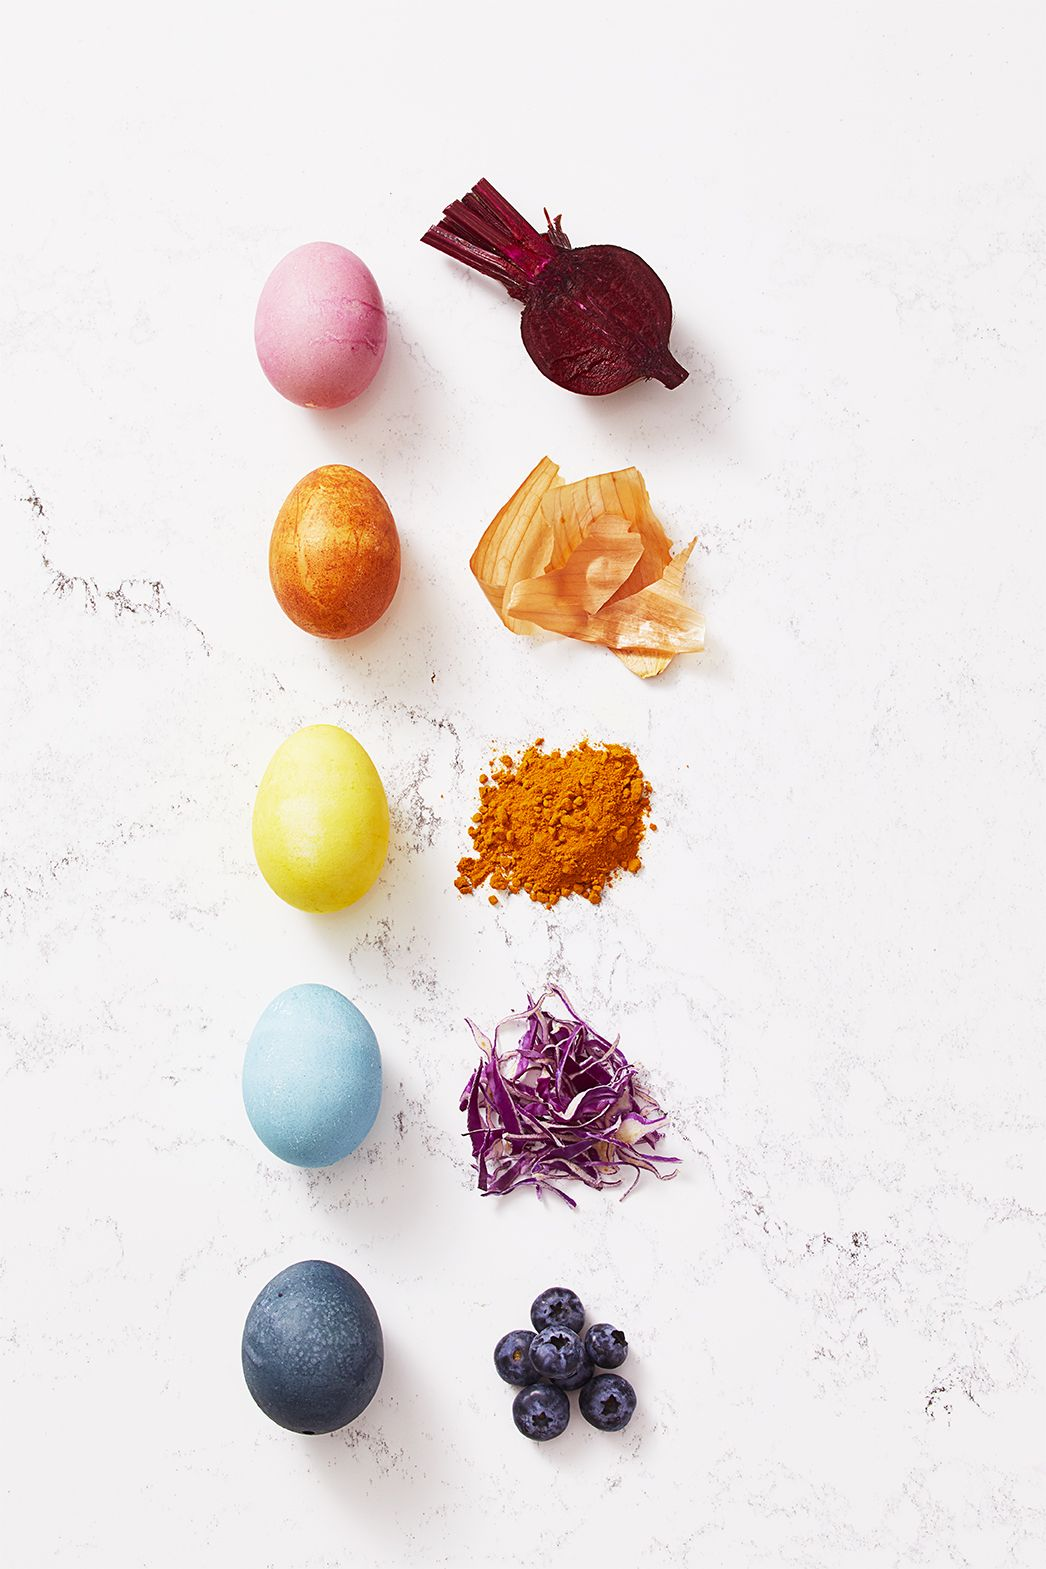 How To Make Natural Easter Egg Dyes Homemade Dye Recipes For Easter Eggs